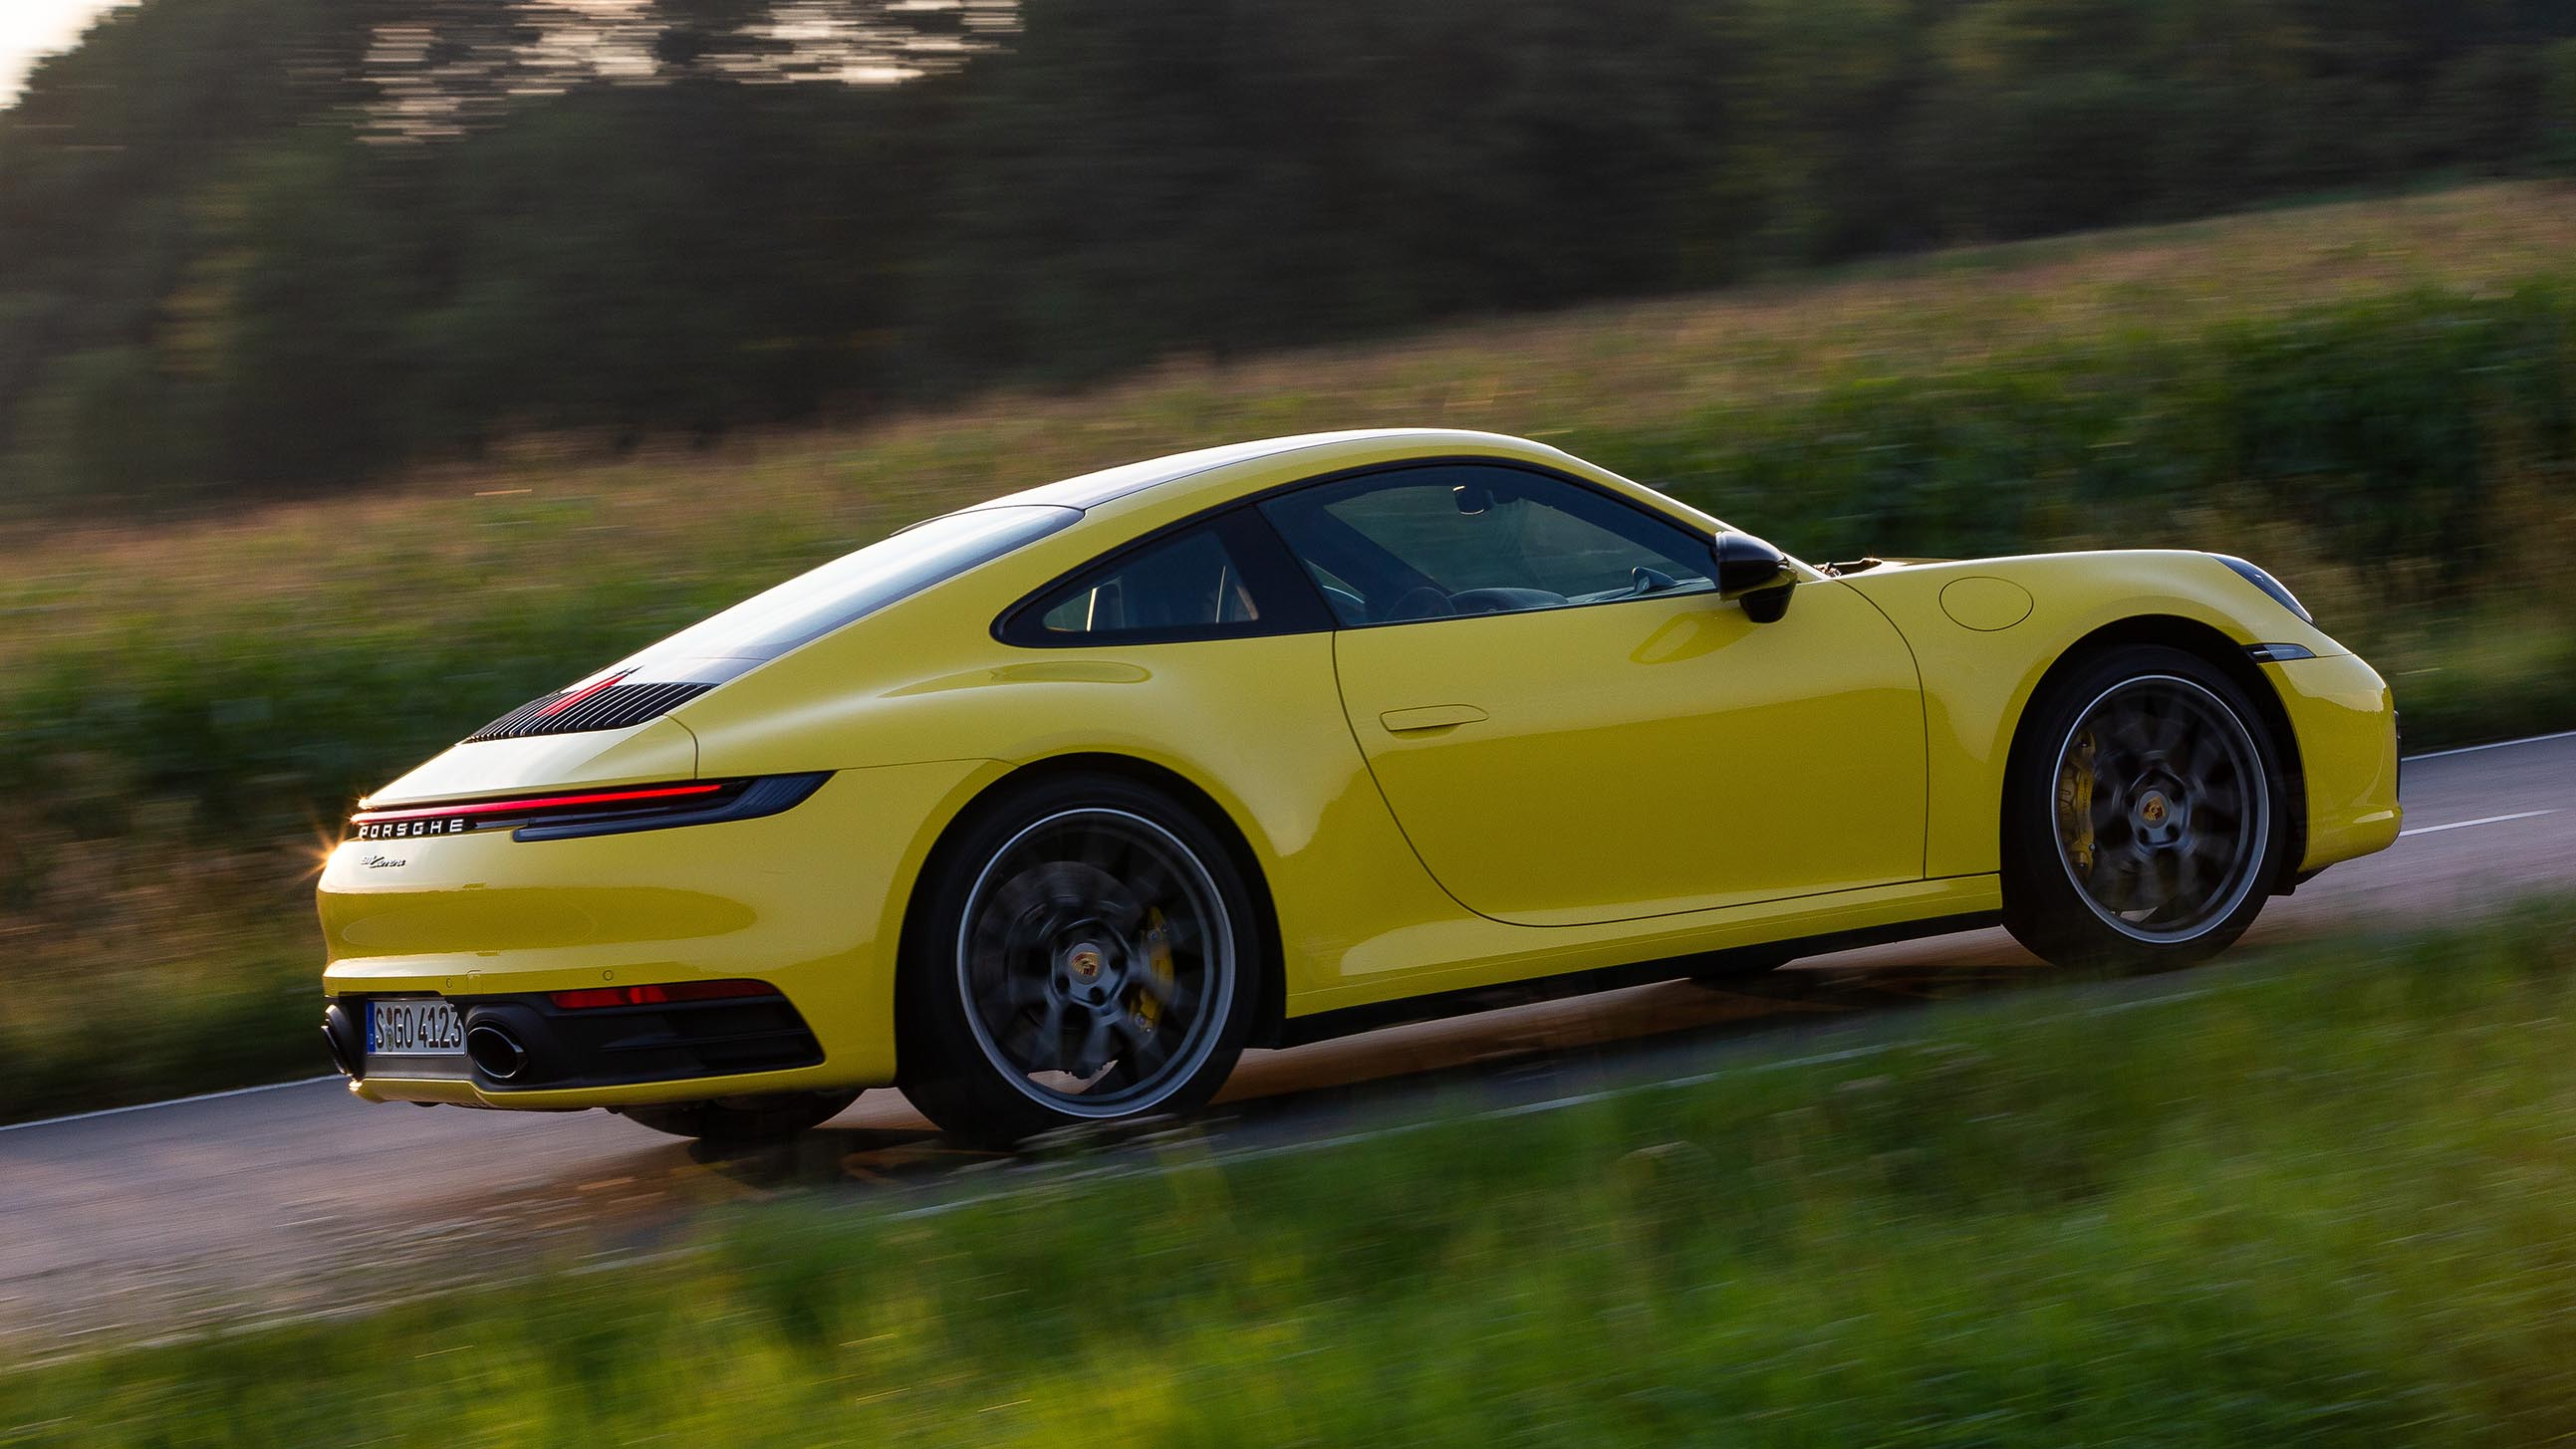 Porsche 911 Carrera Review Surprise The Cheaper 911 Is The One To Buy Top Gear